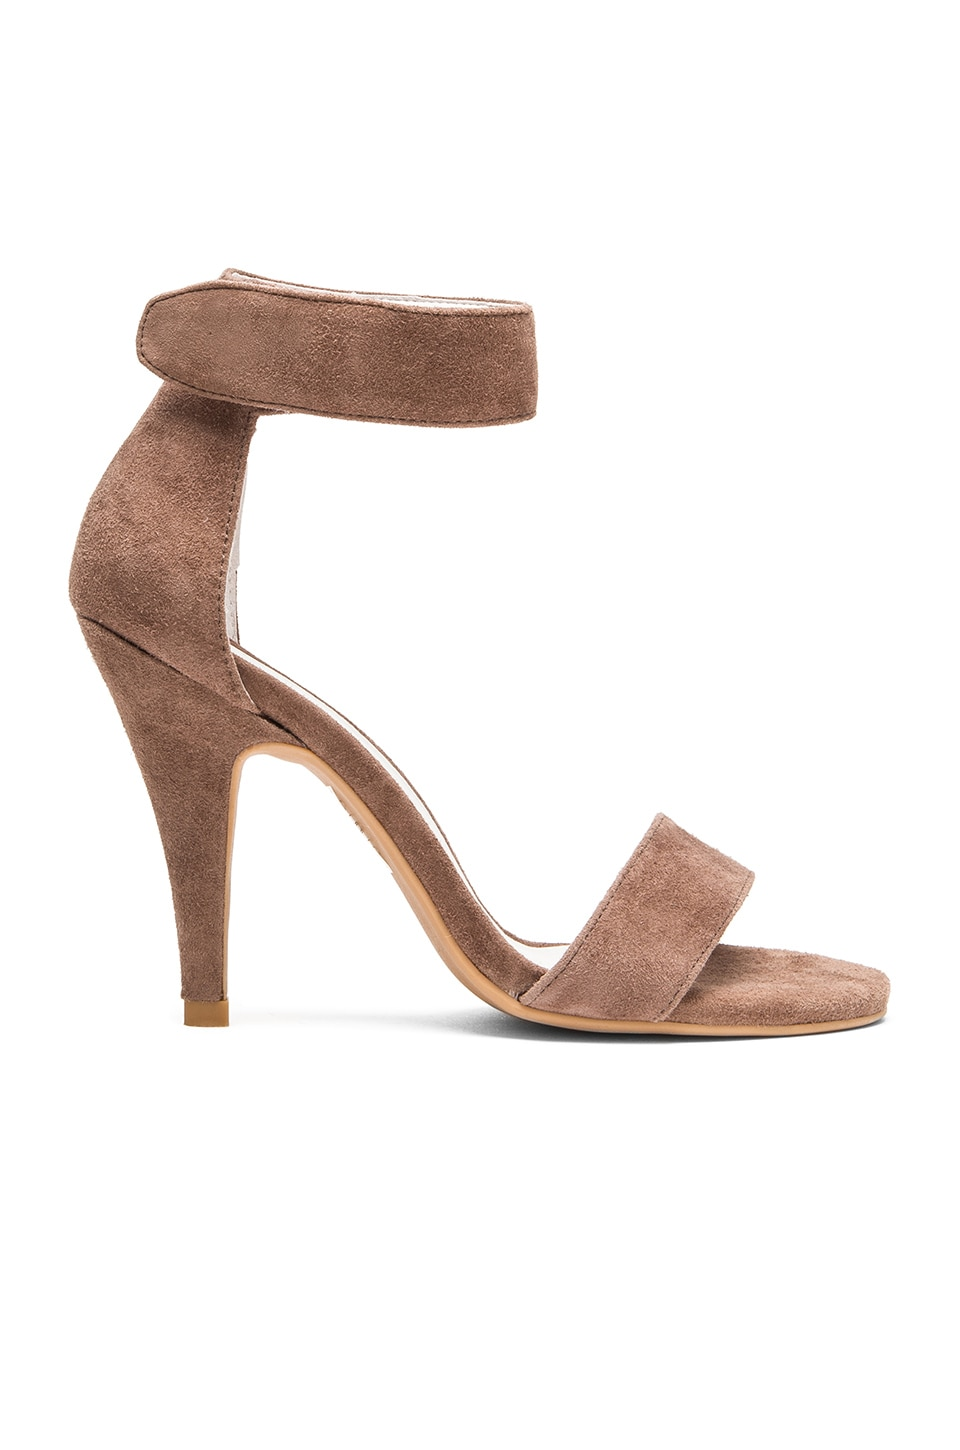 Jeffrey Campbell Hough Heel in Taupe Suede